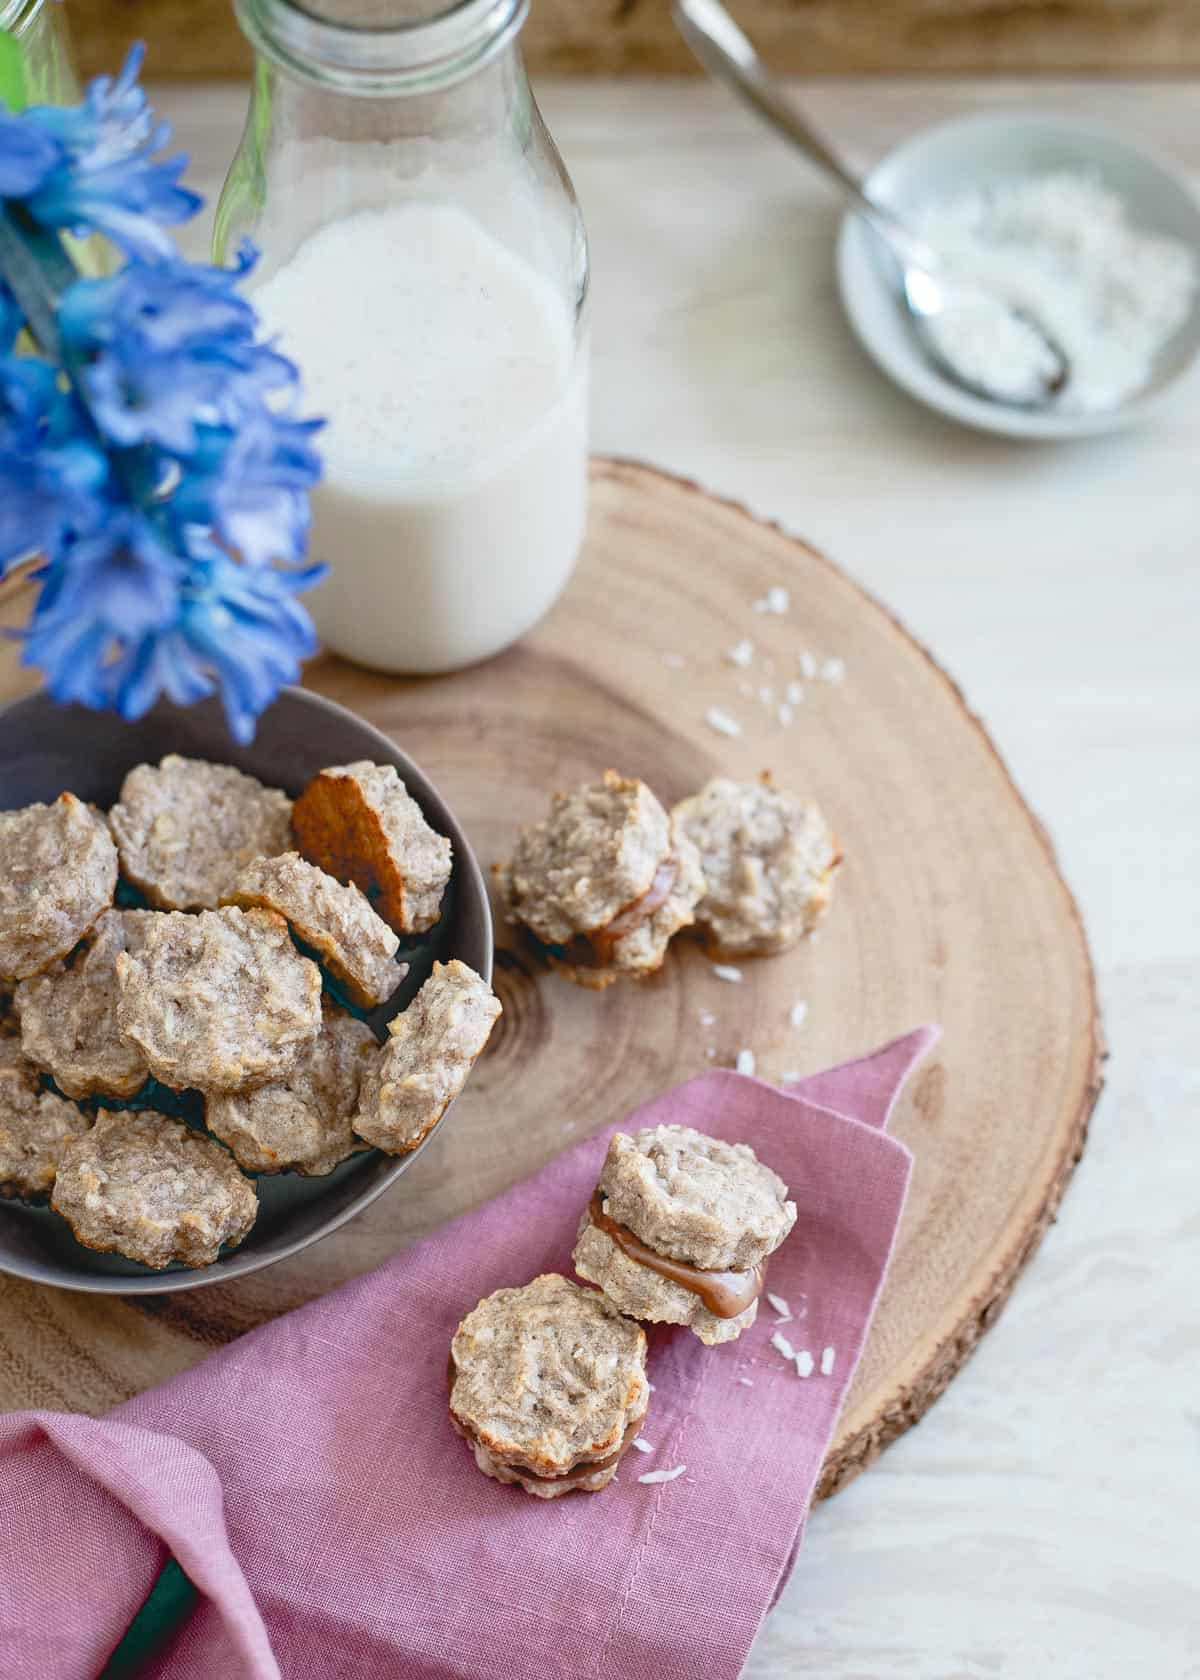 Bite-size banana macaroon sandwich cookies are both grain-free and gluten-free so you can feel good about this sweet snack.